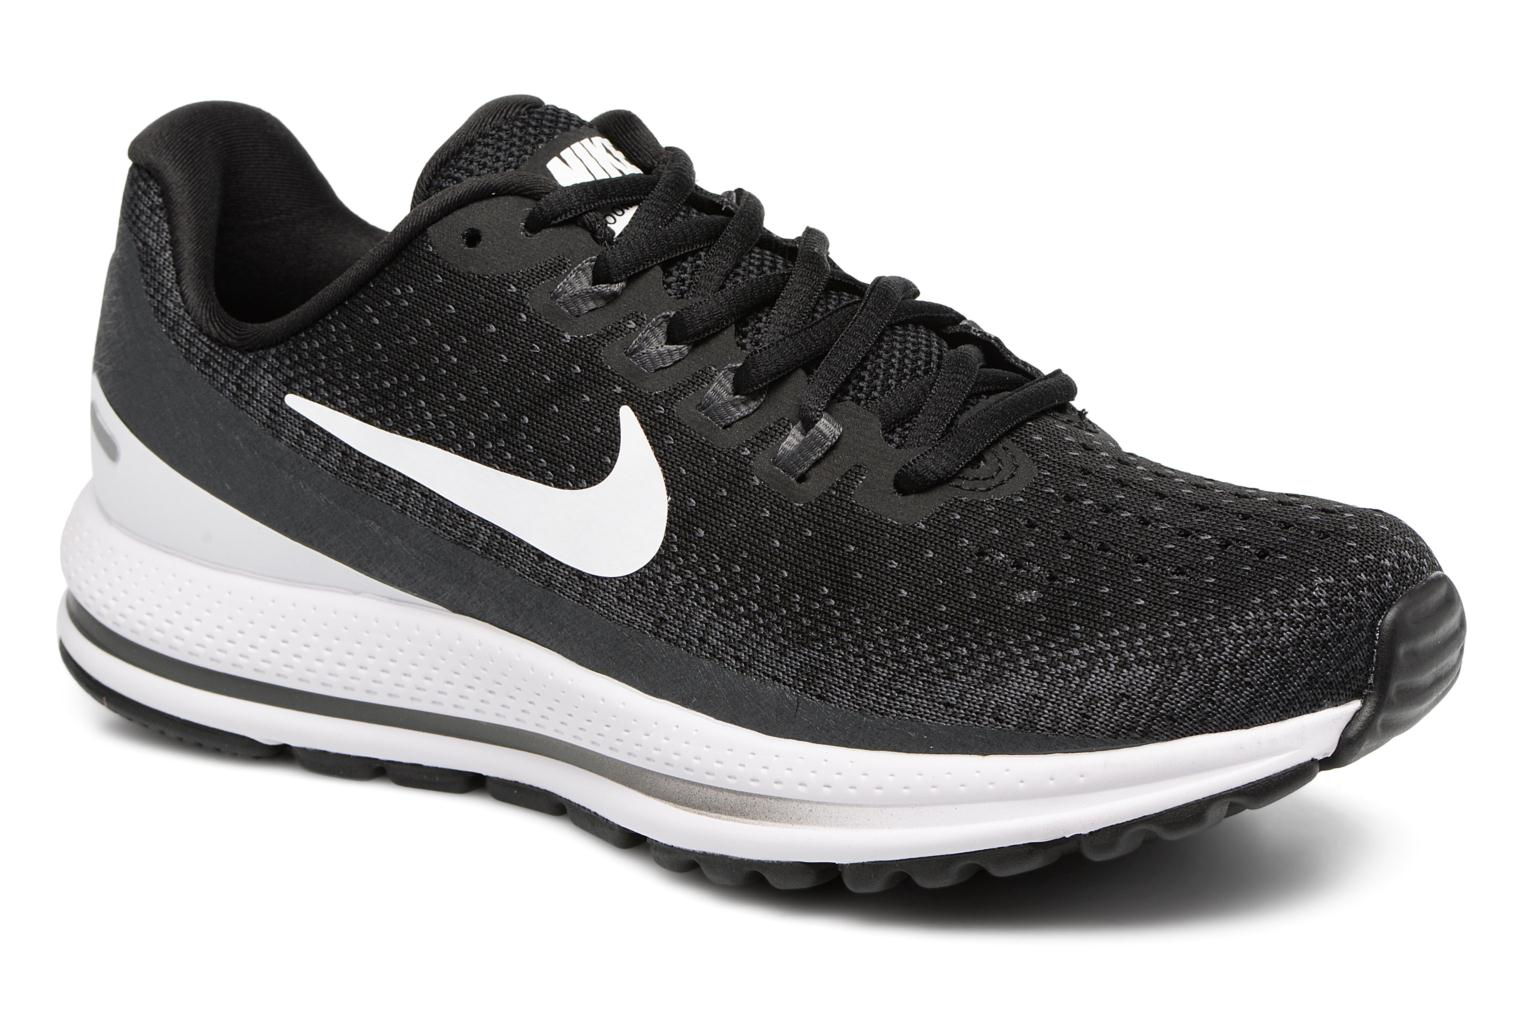 Wmns Nike Air Zoom Vomero 13 Black/white-anthracite